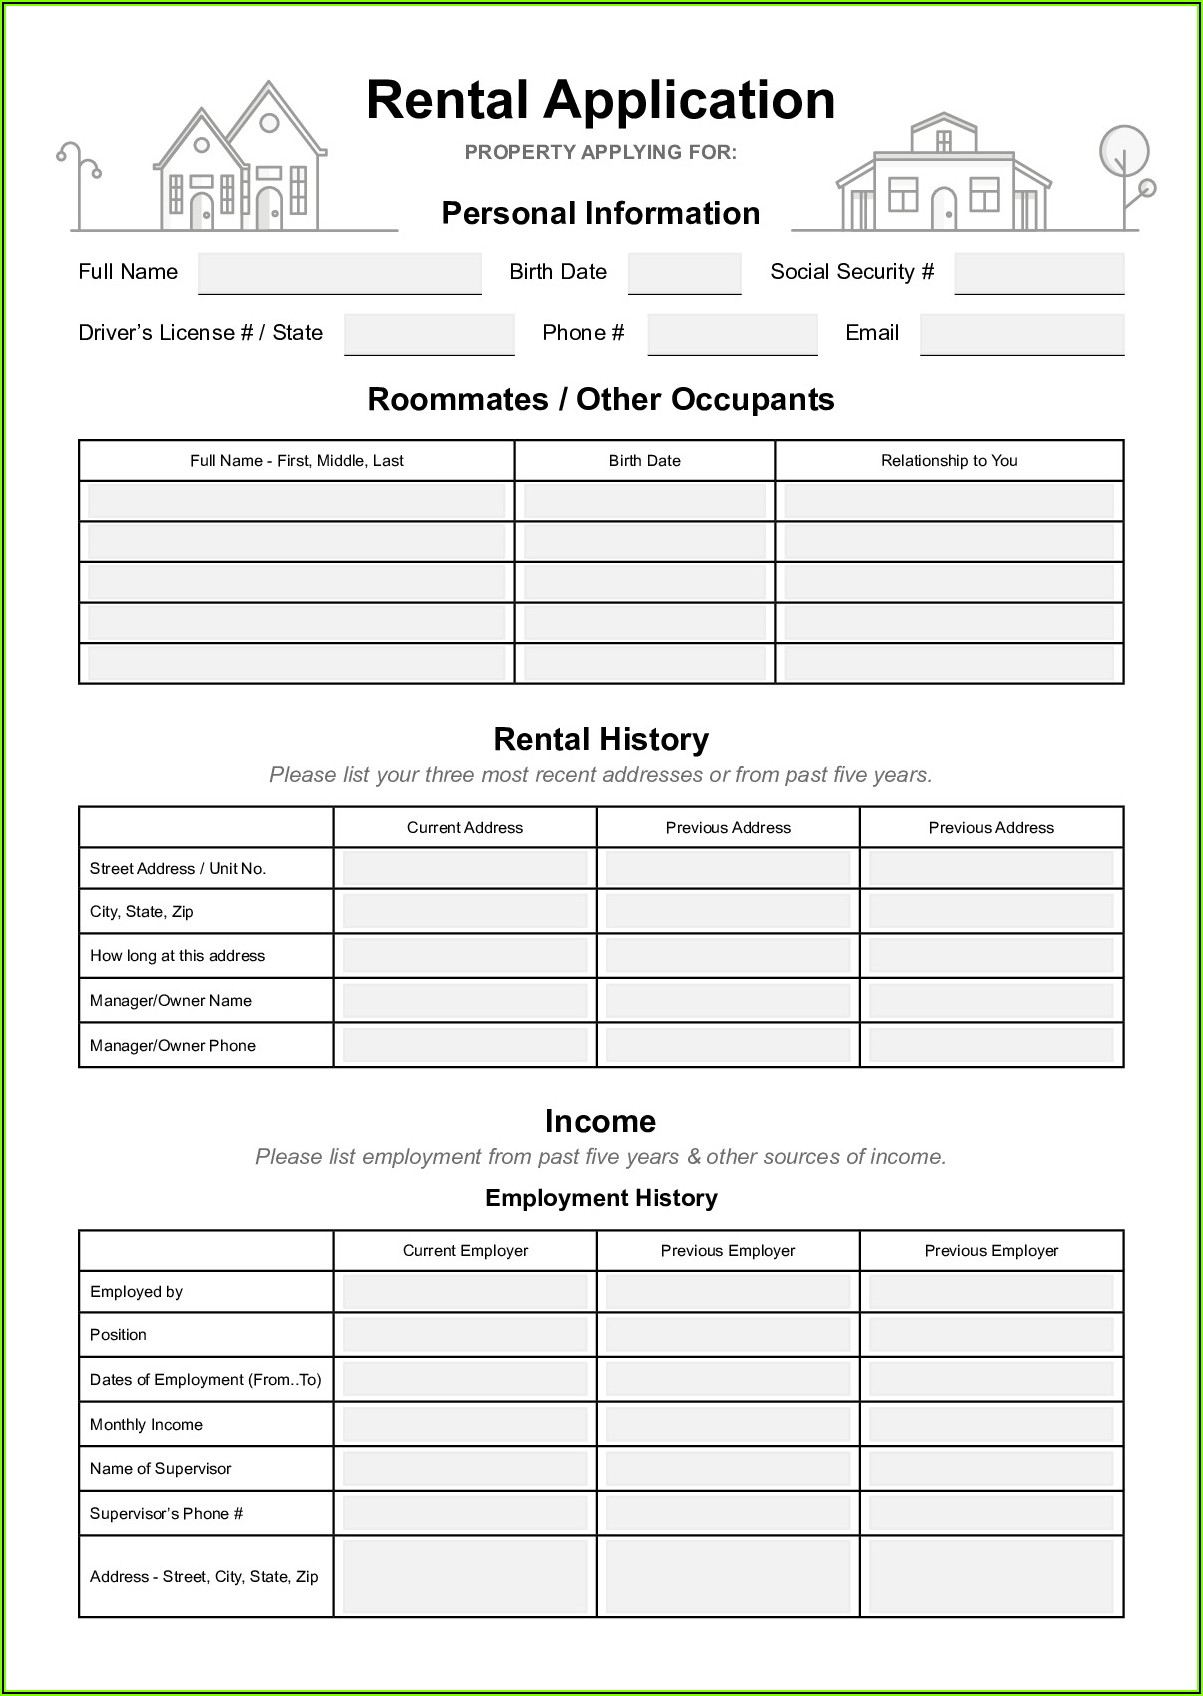 Rental Application Form Virginia Pdf